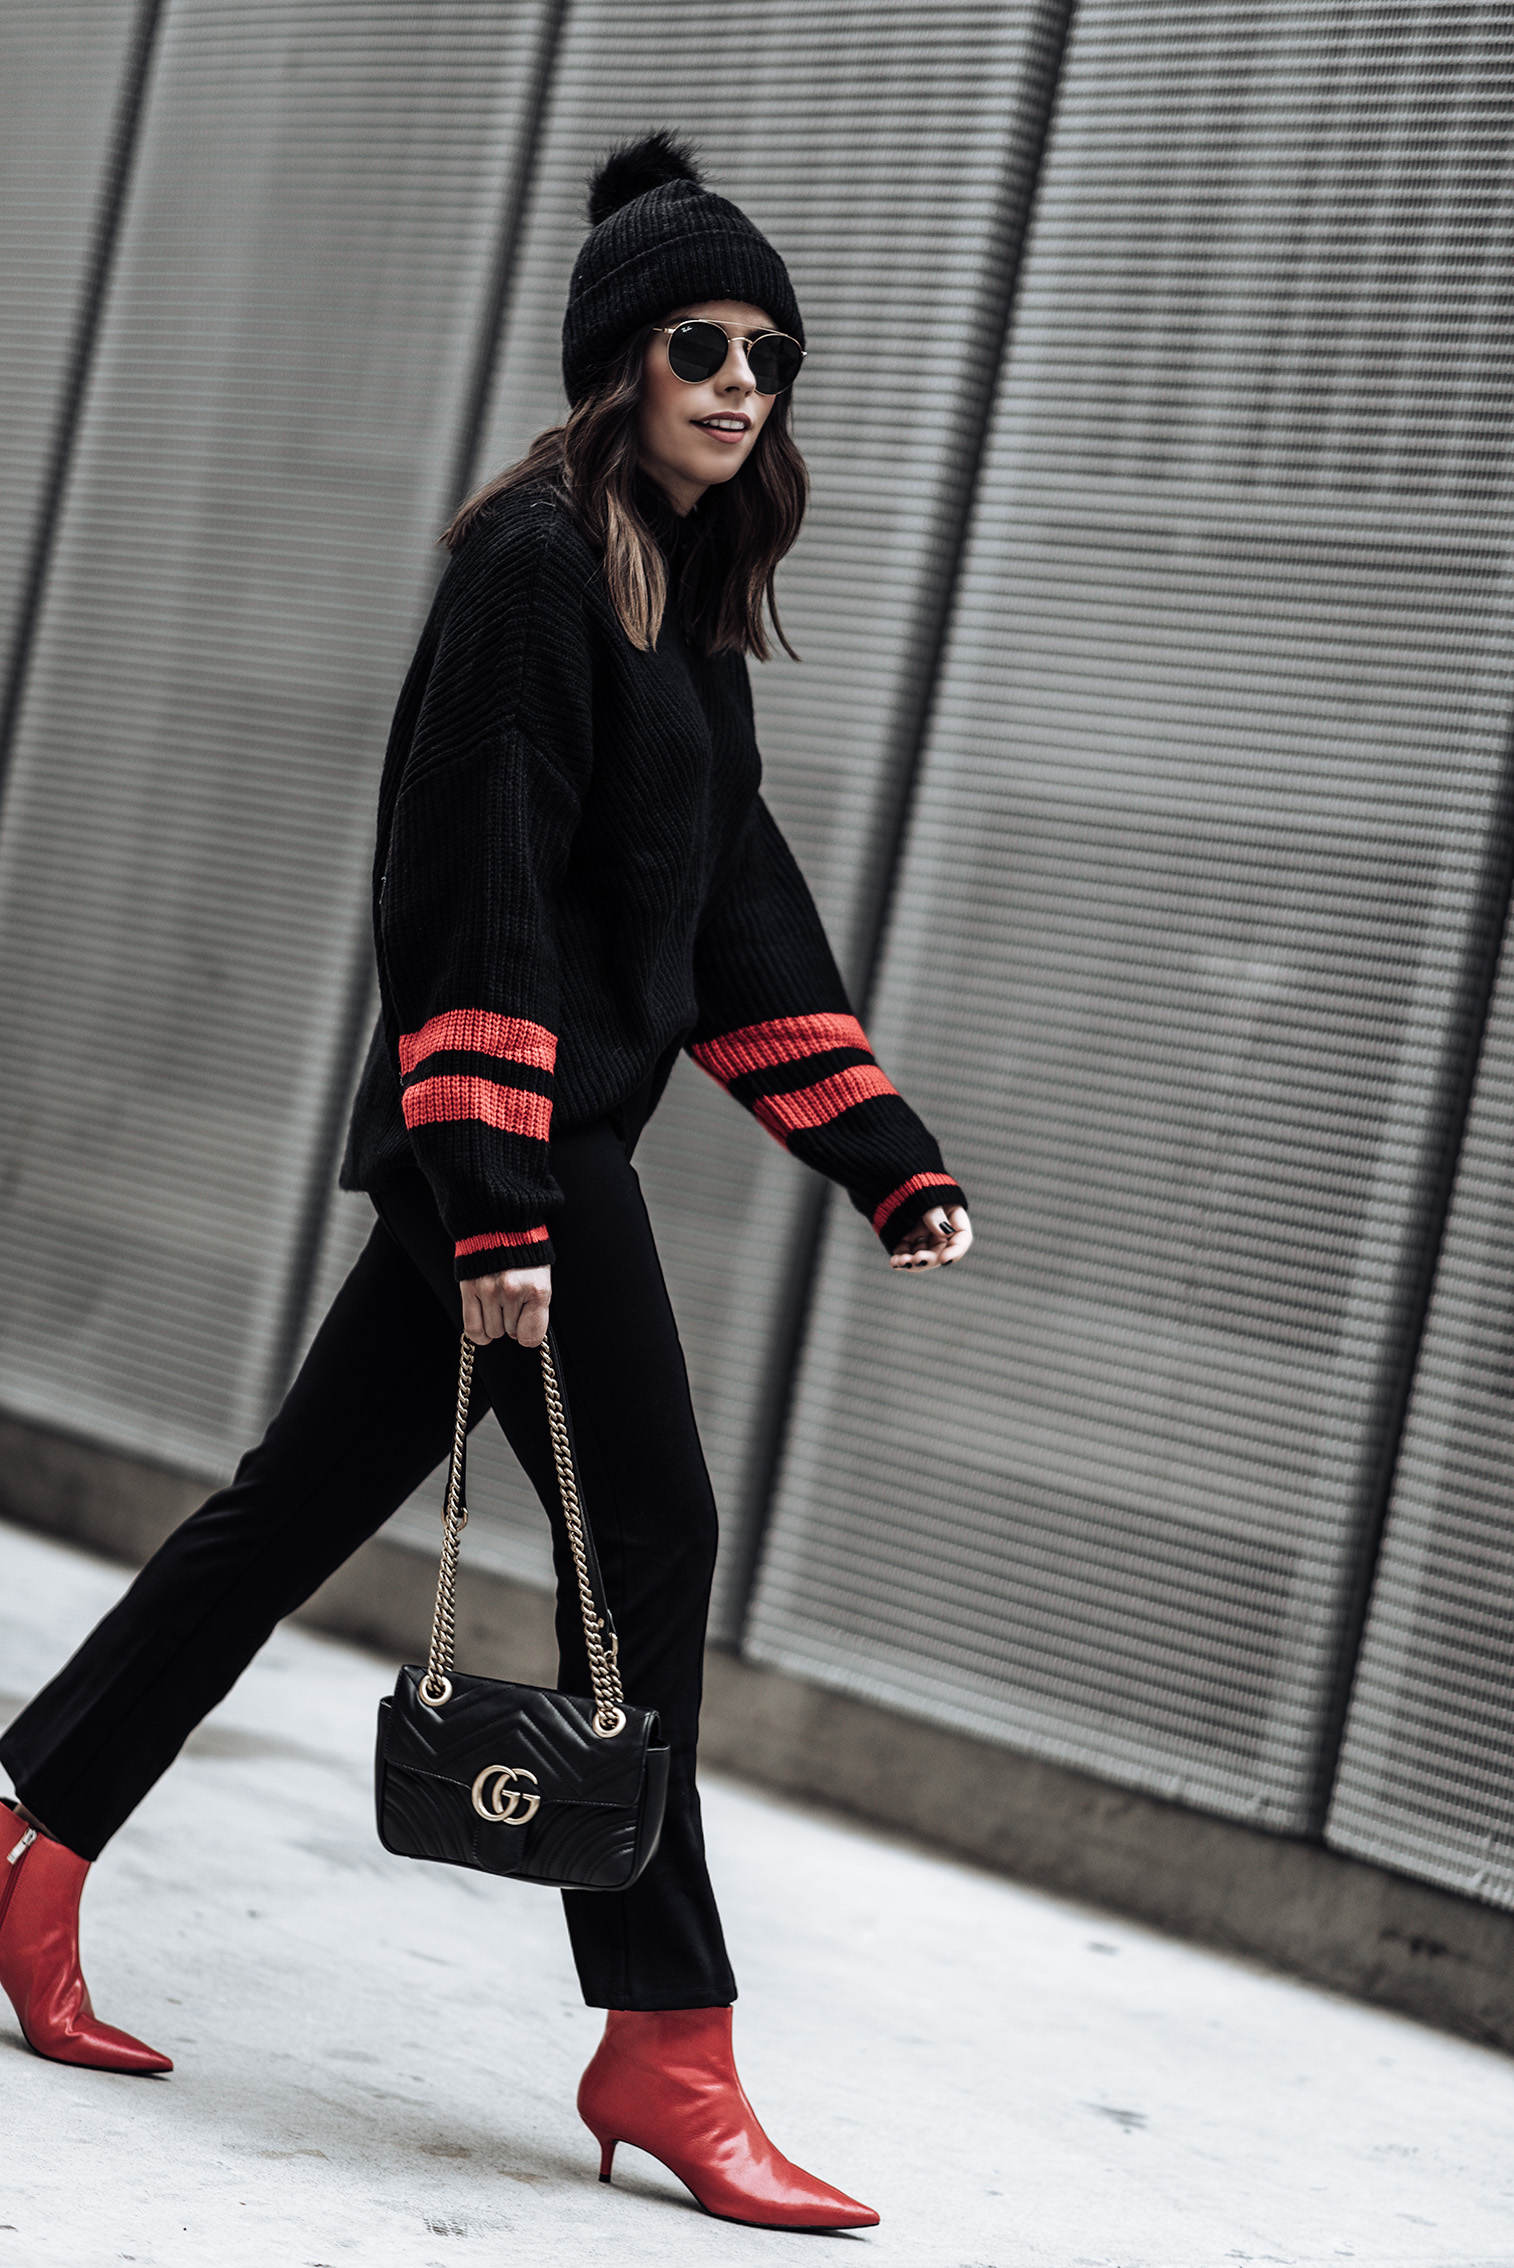 Power color - Striped sleeve sweater | Happy Trails faux fur pom pom beanie | Red point toe ankle boots (Zara, similar here) | Mini Gigi Marmot Bag | Lovers + Friends Crop Flare Pant | 51 MM Aviator Sunglasses | #streetstyle